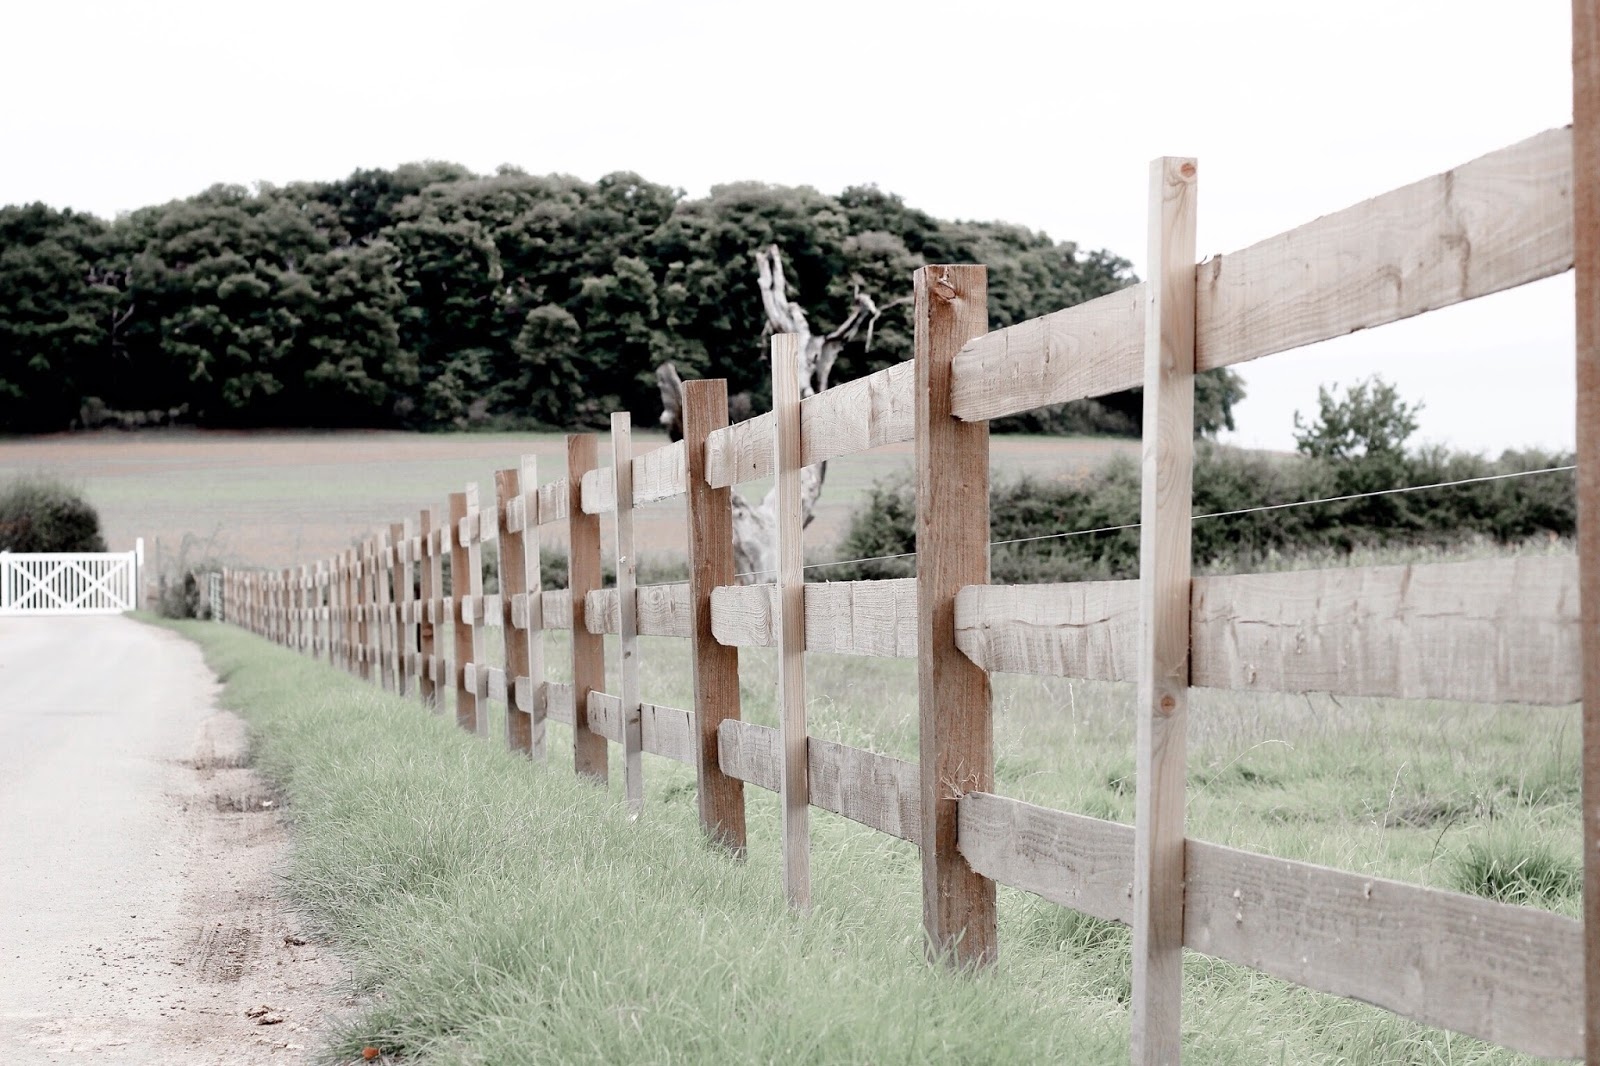 English Countryside Wooden Fences in Field